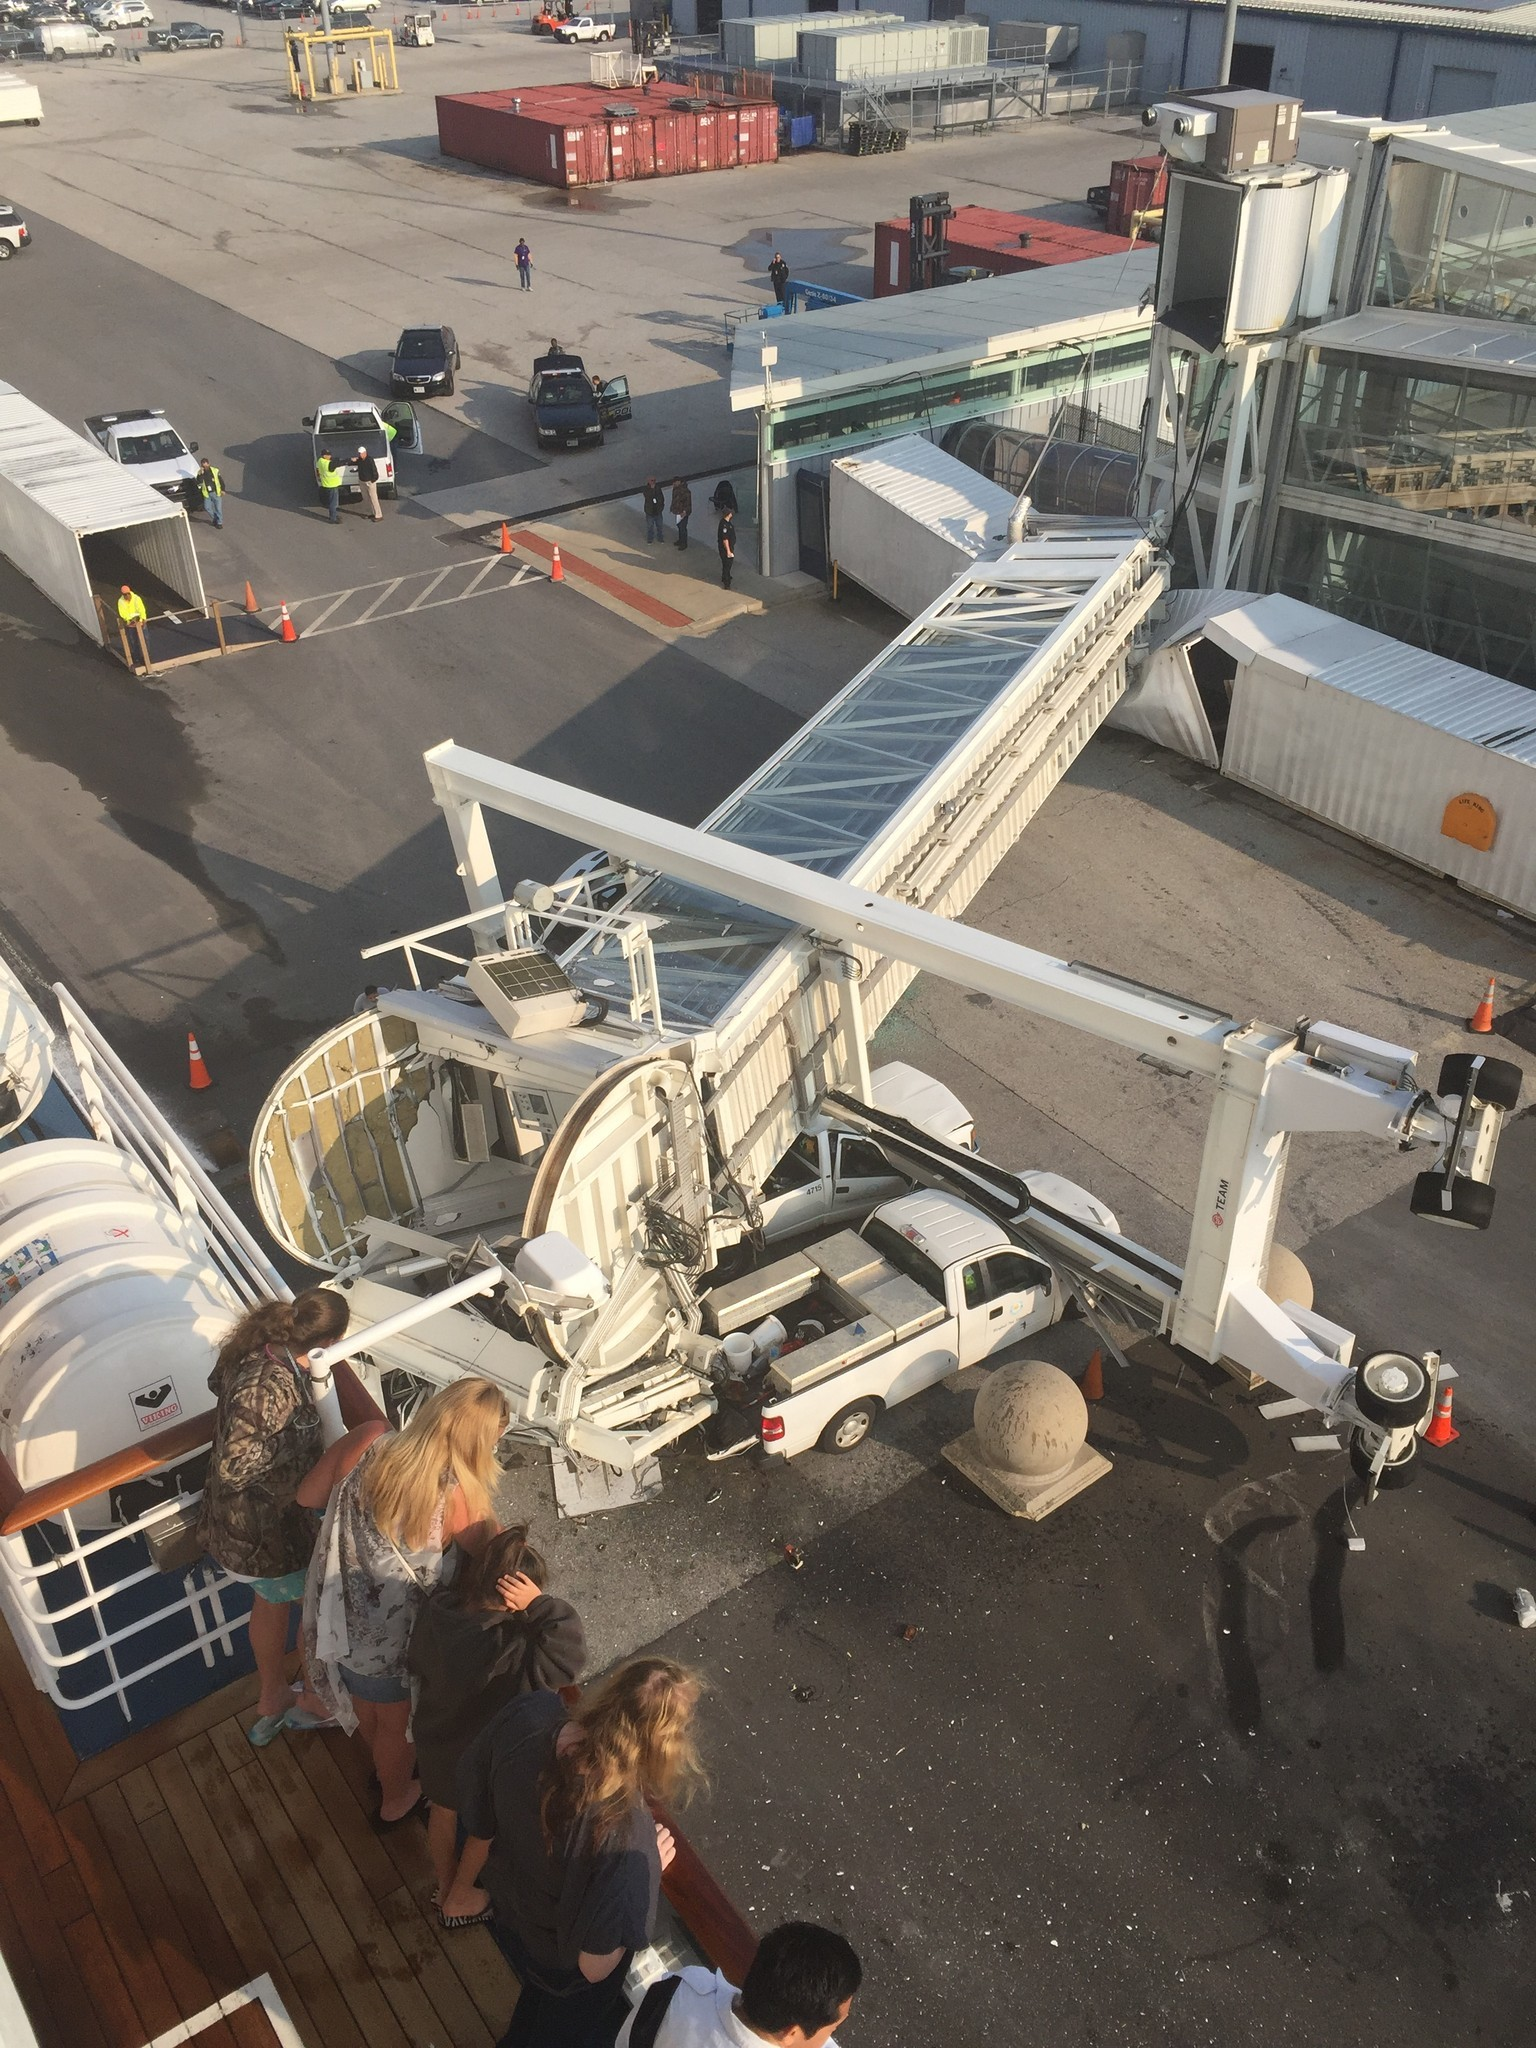 Carnival Cruise Ship Crashes Into Gangway At Baltimore